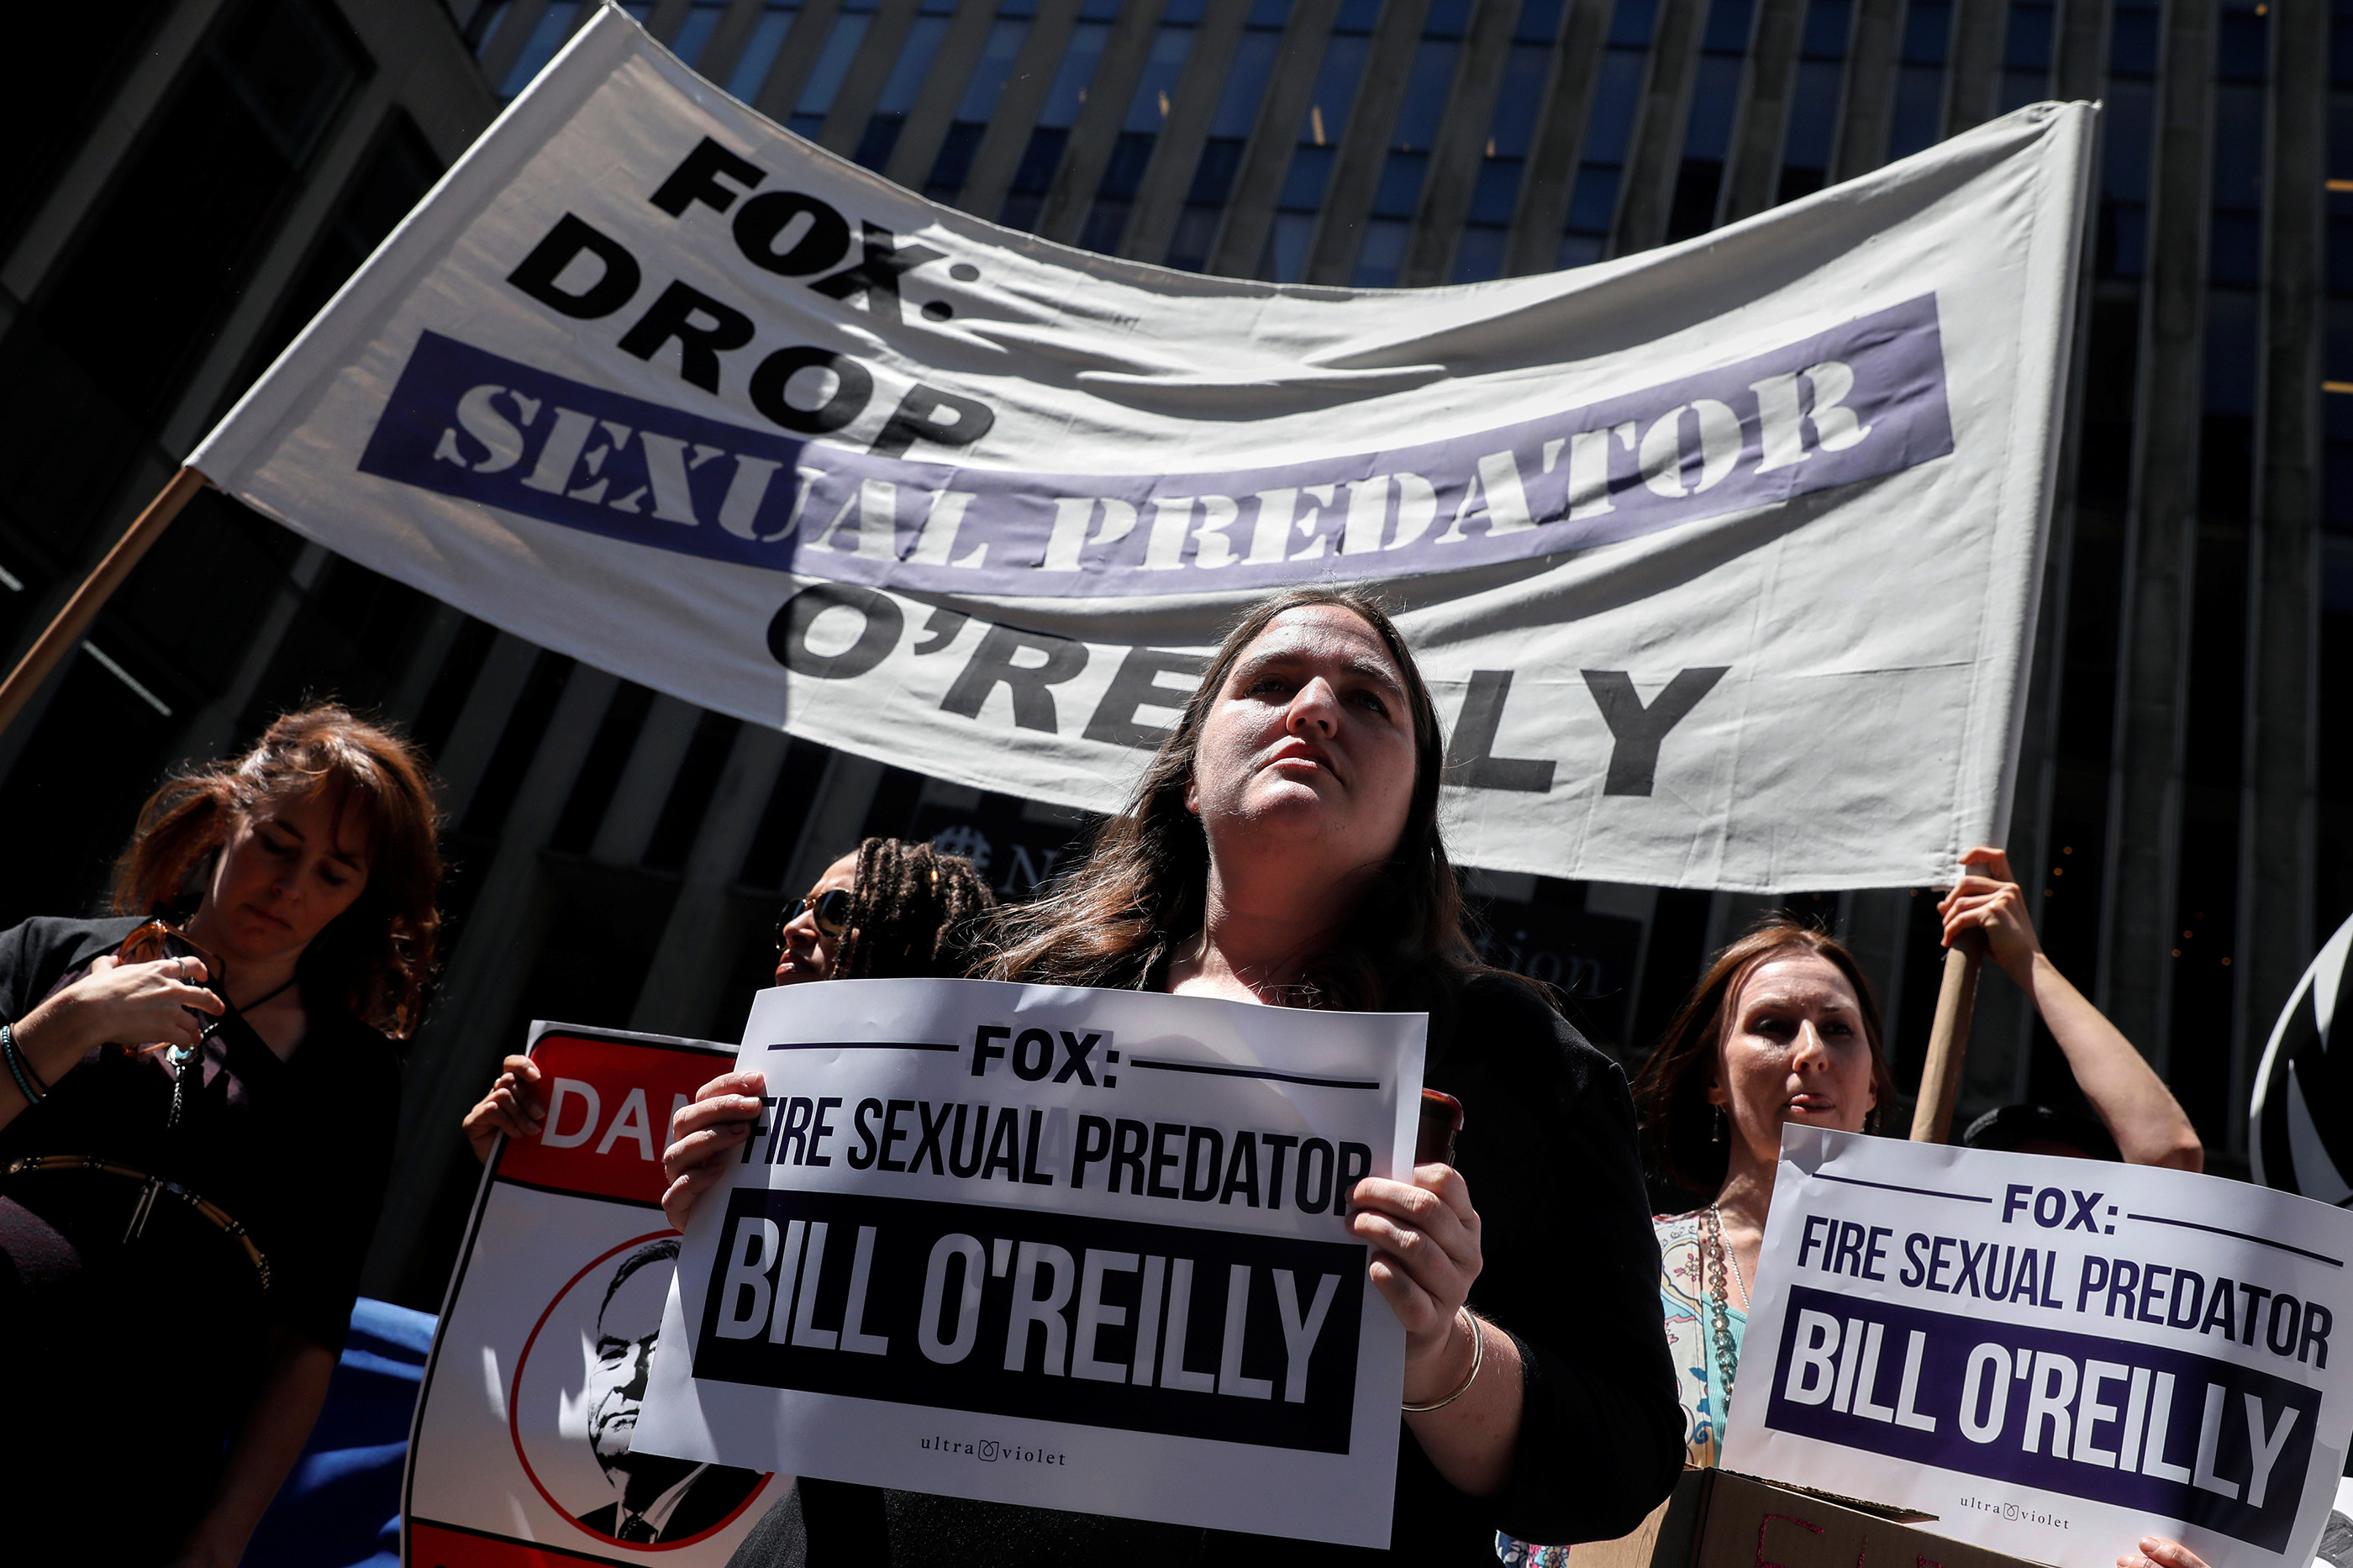 171025-bill-oreilly-protests